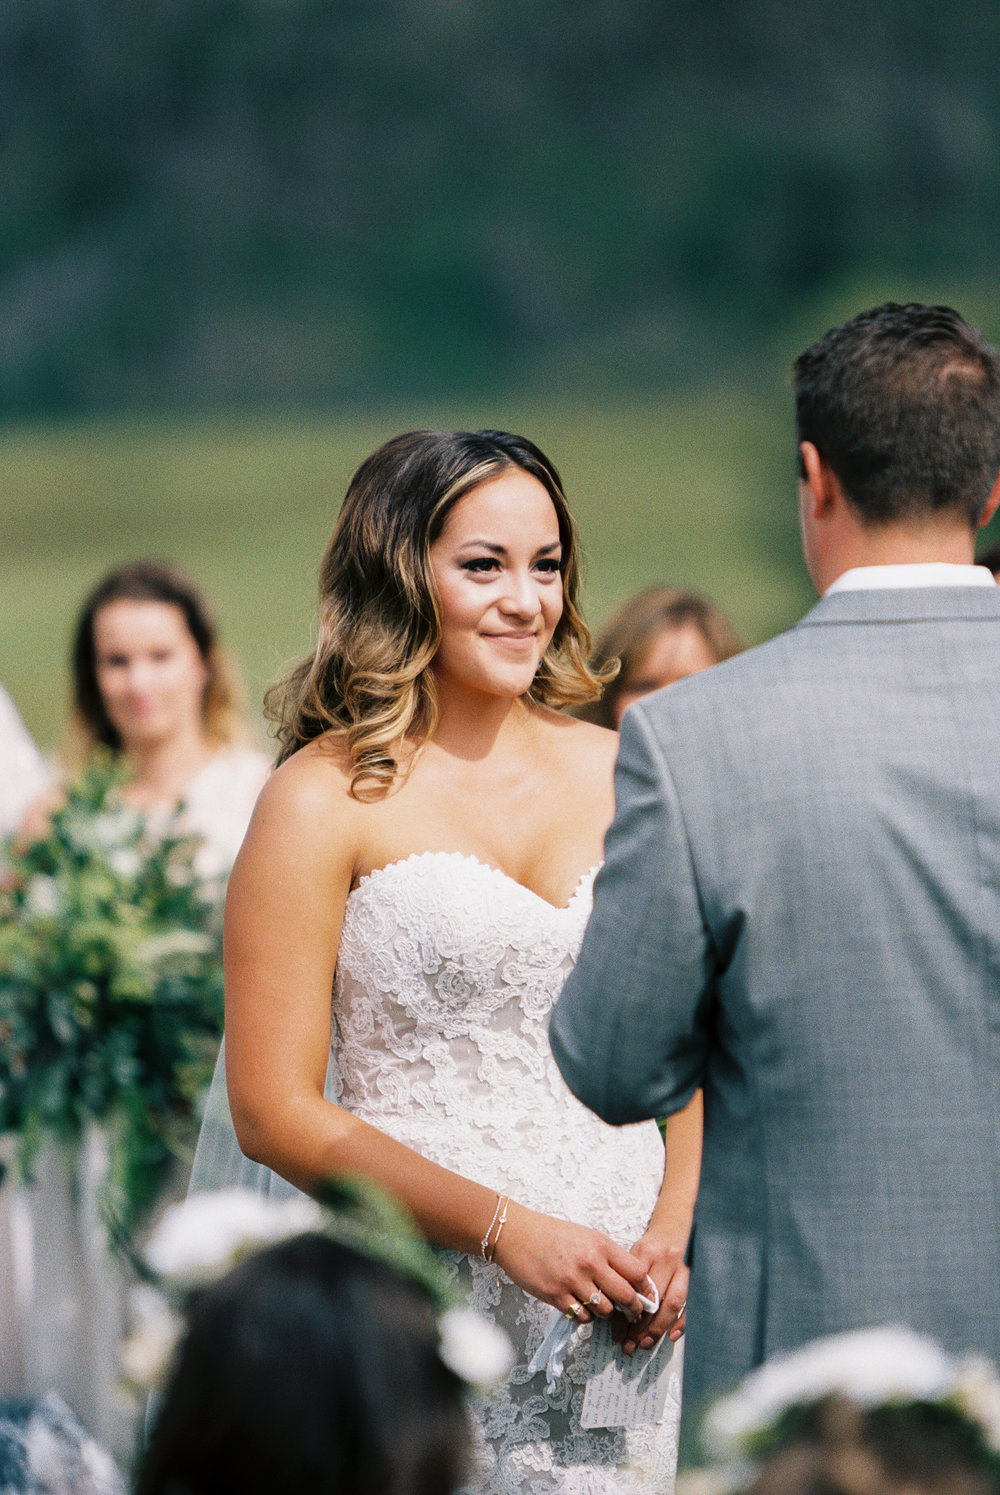 Valerie + Tim | Strawberry Creek Ranch wedding | Matthew Christopher Emma gown from Little White Dress | Cassidy Brooke Photography